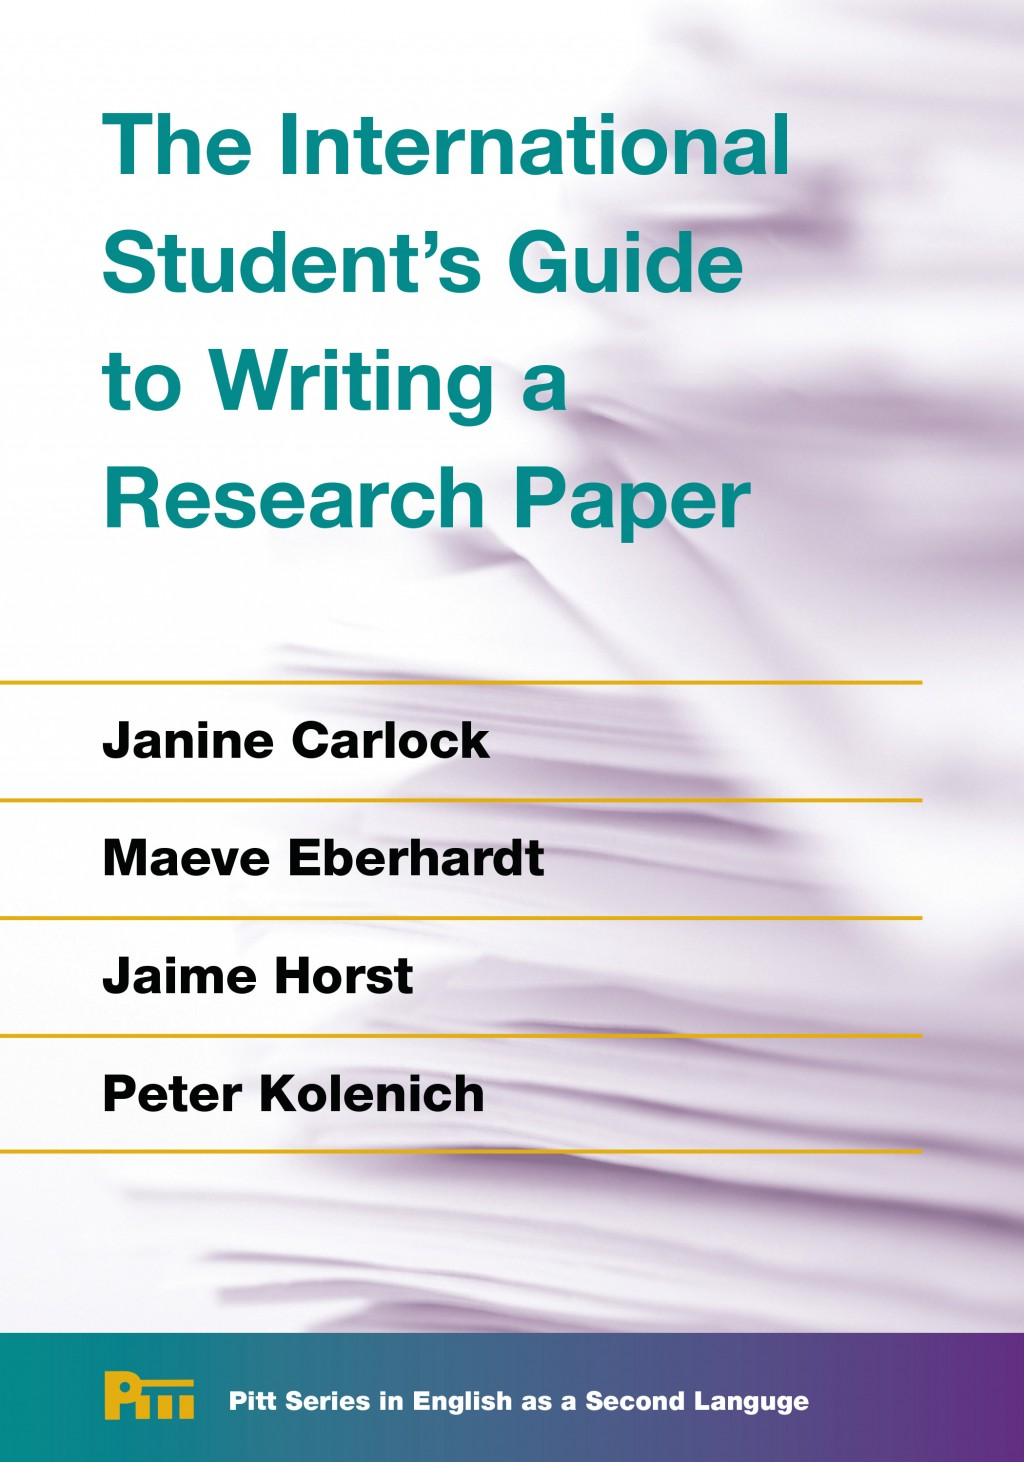 013 Research Paper Striking Writing Meme Papers A Complete Guide 15th Edition Pdf Free 16th Large